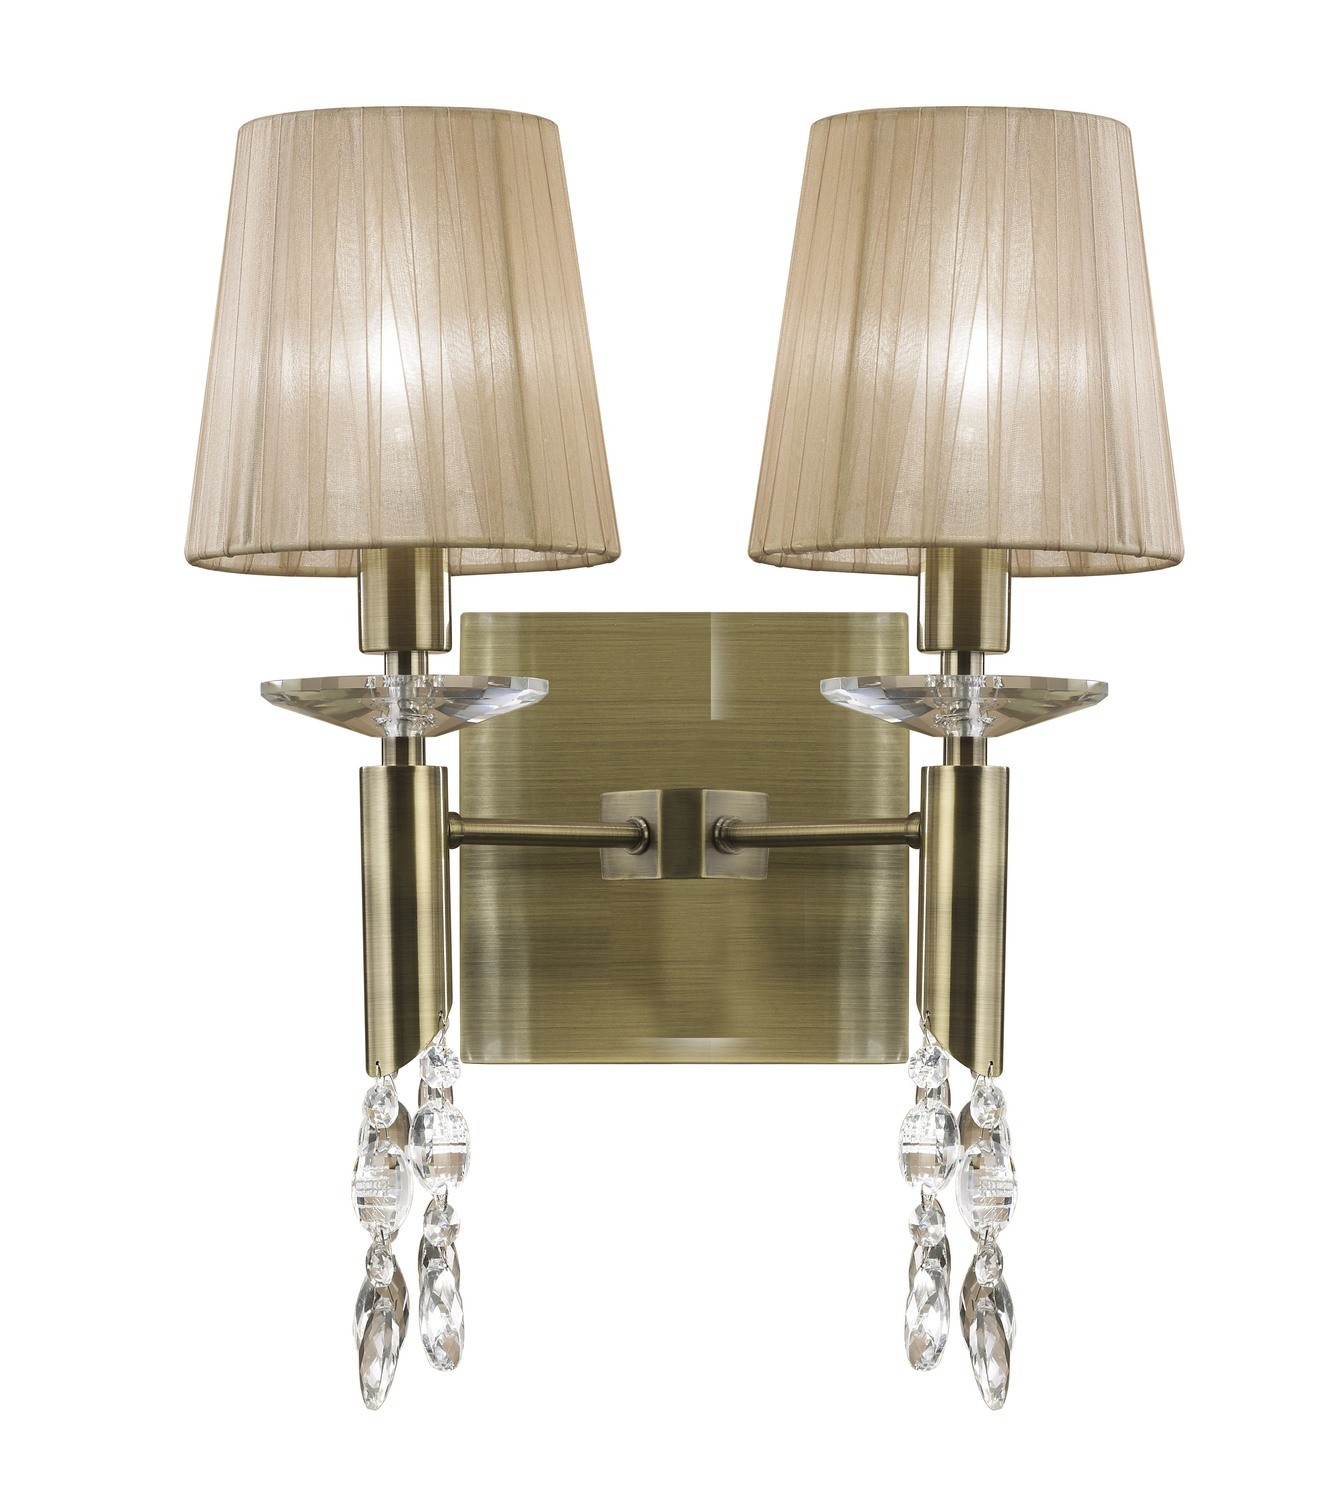 Tiffany Wall Lamp Switched 2+2 Light E14+G9, Antique Brass With Soft Bronze Shades & Clear Crystal